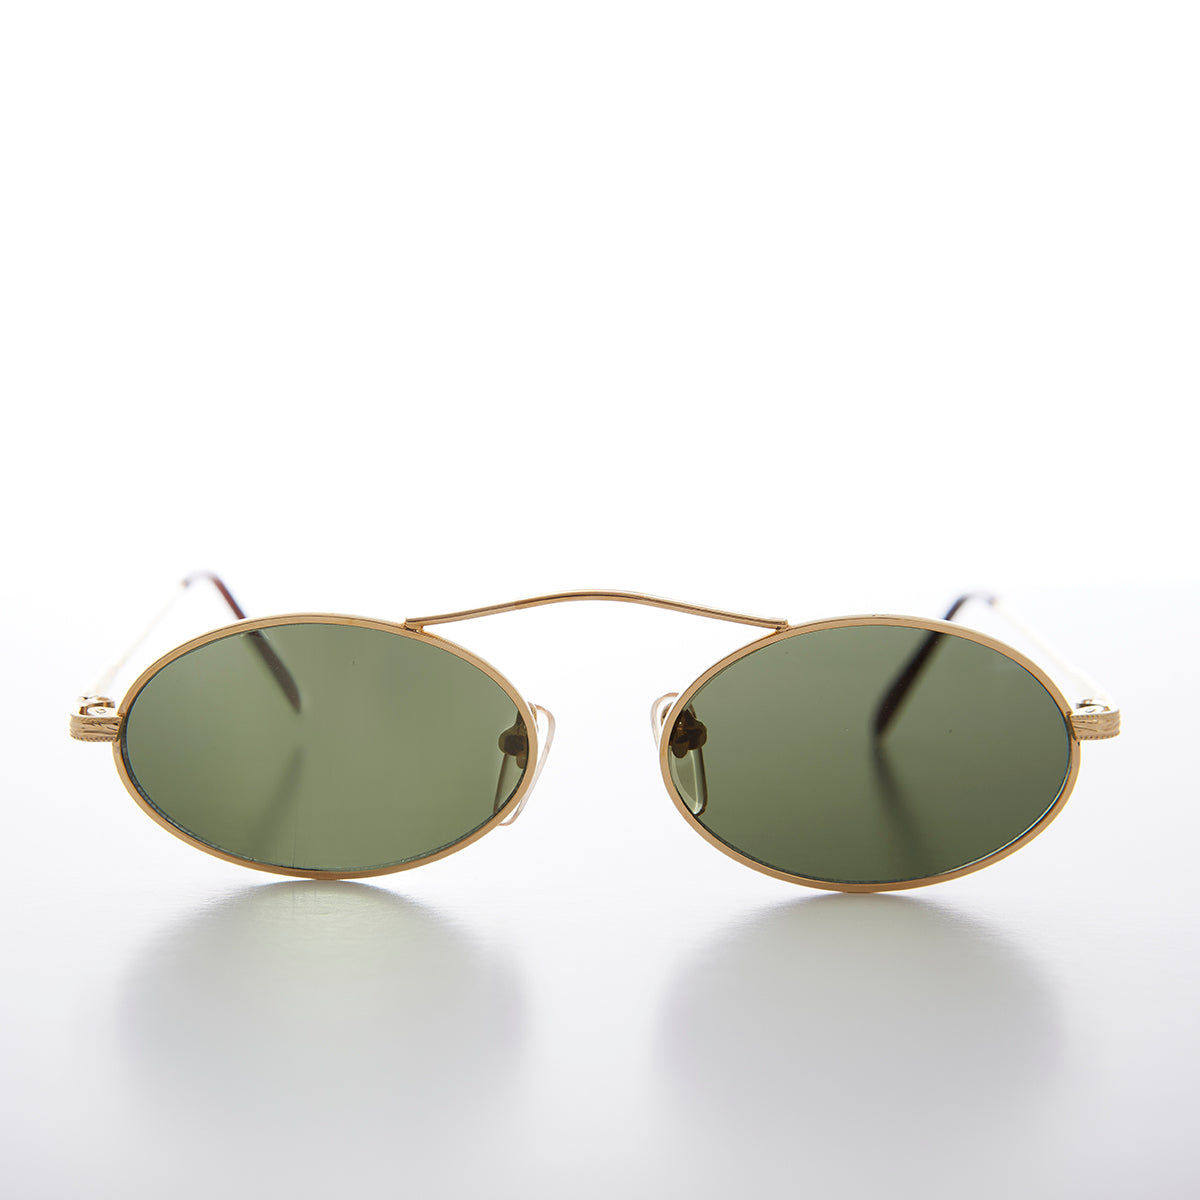 90s Oval Metal Aviator Sunglass with Floating Cross Bar